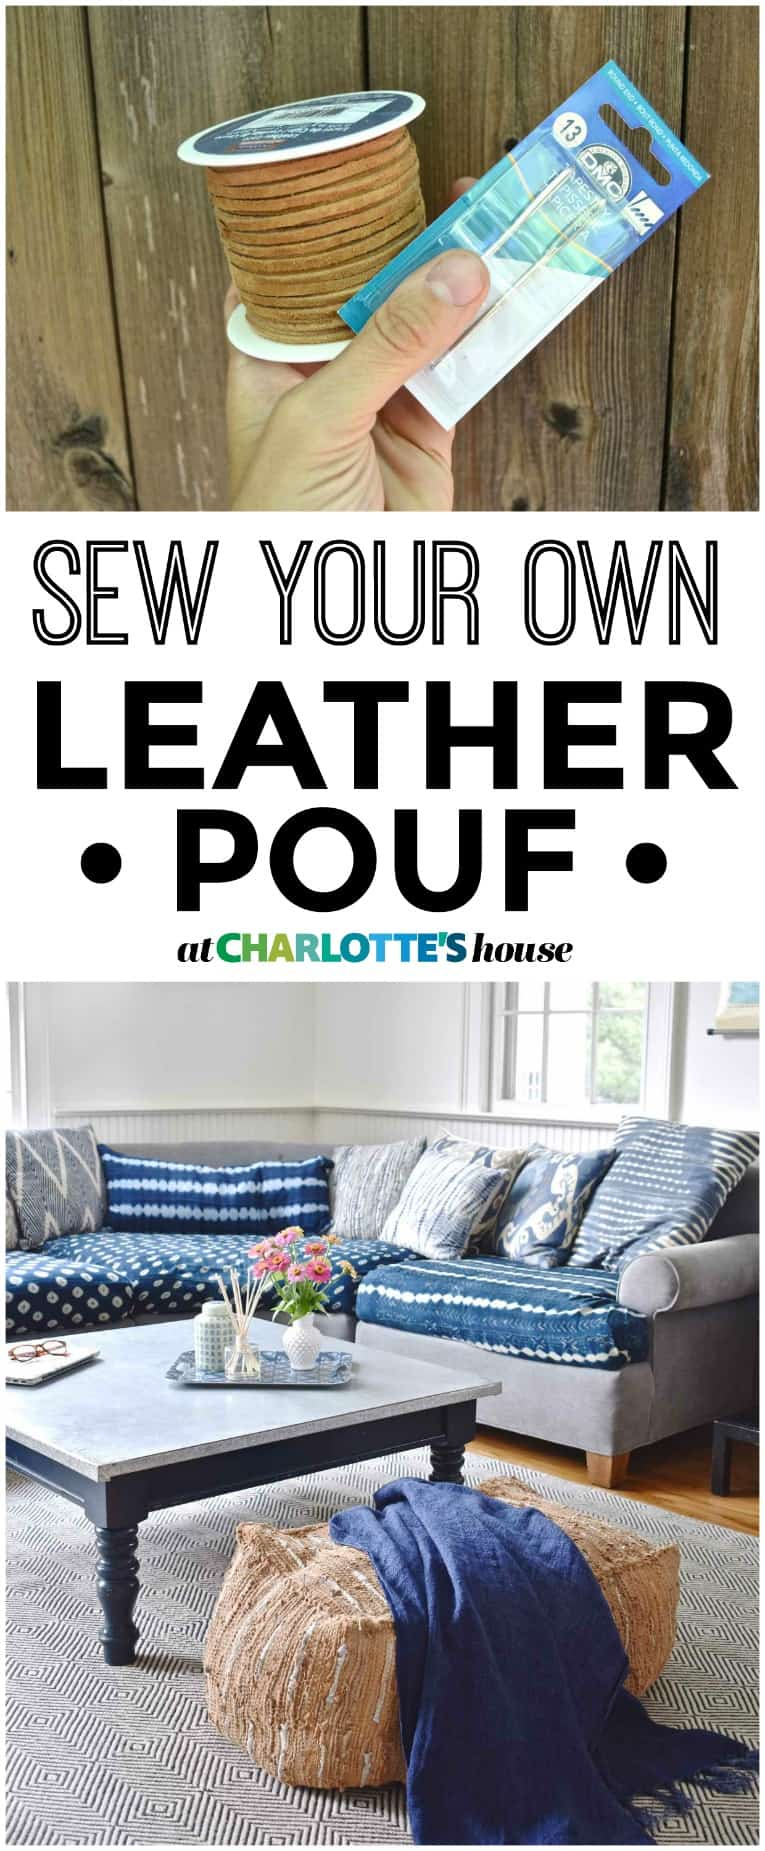 How to make your own leather pouf!